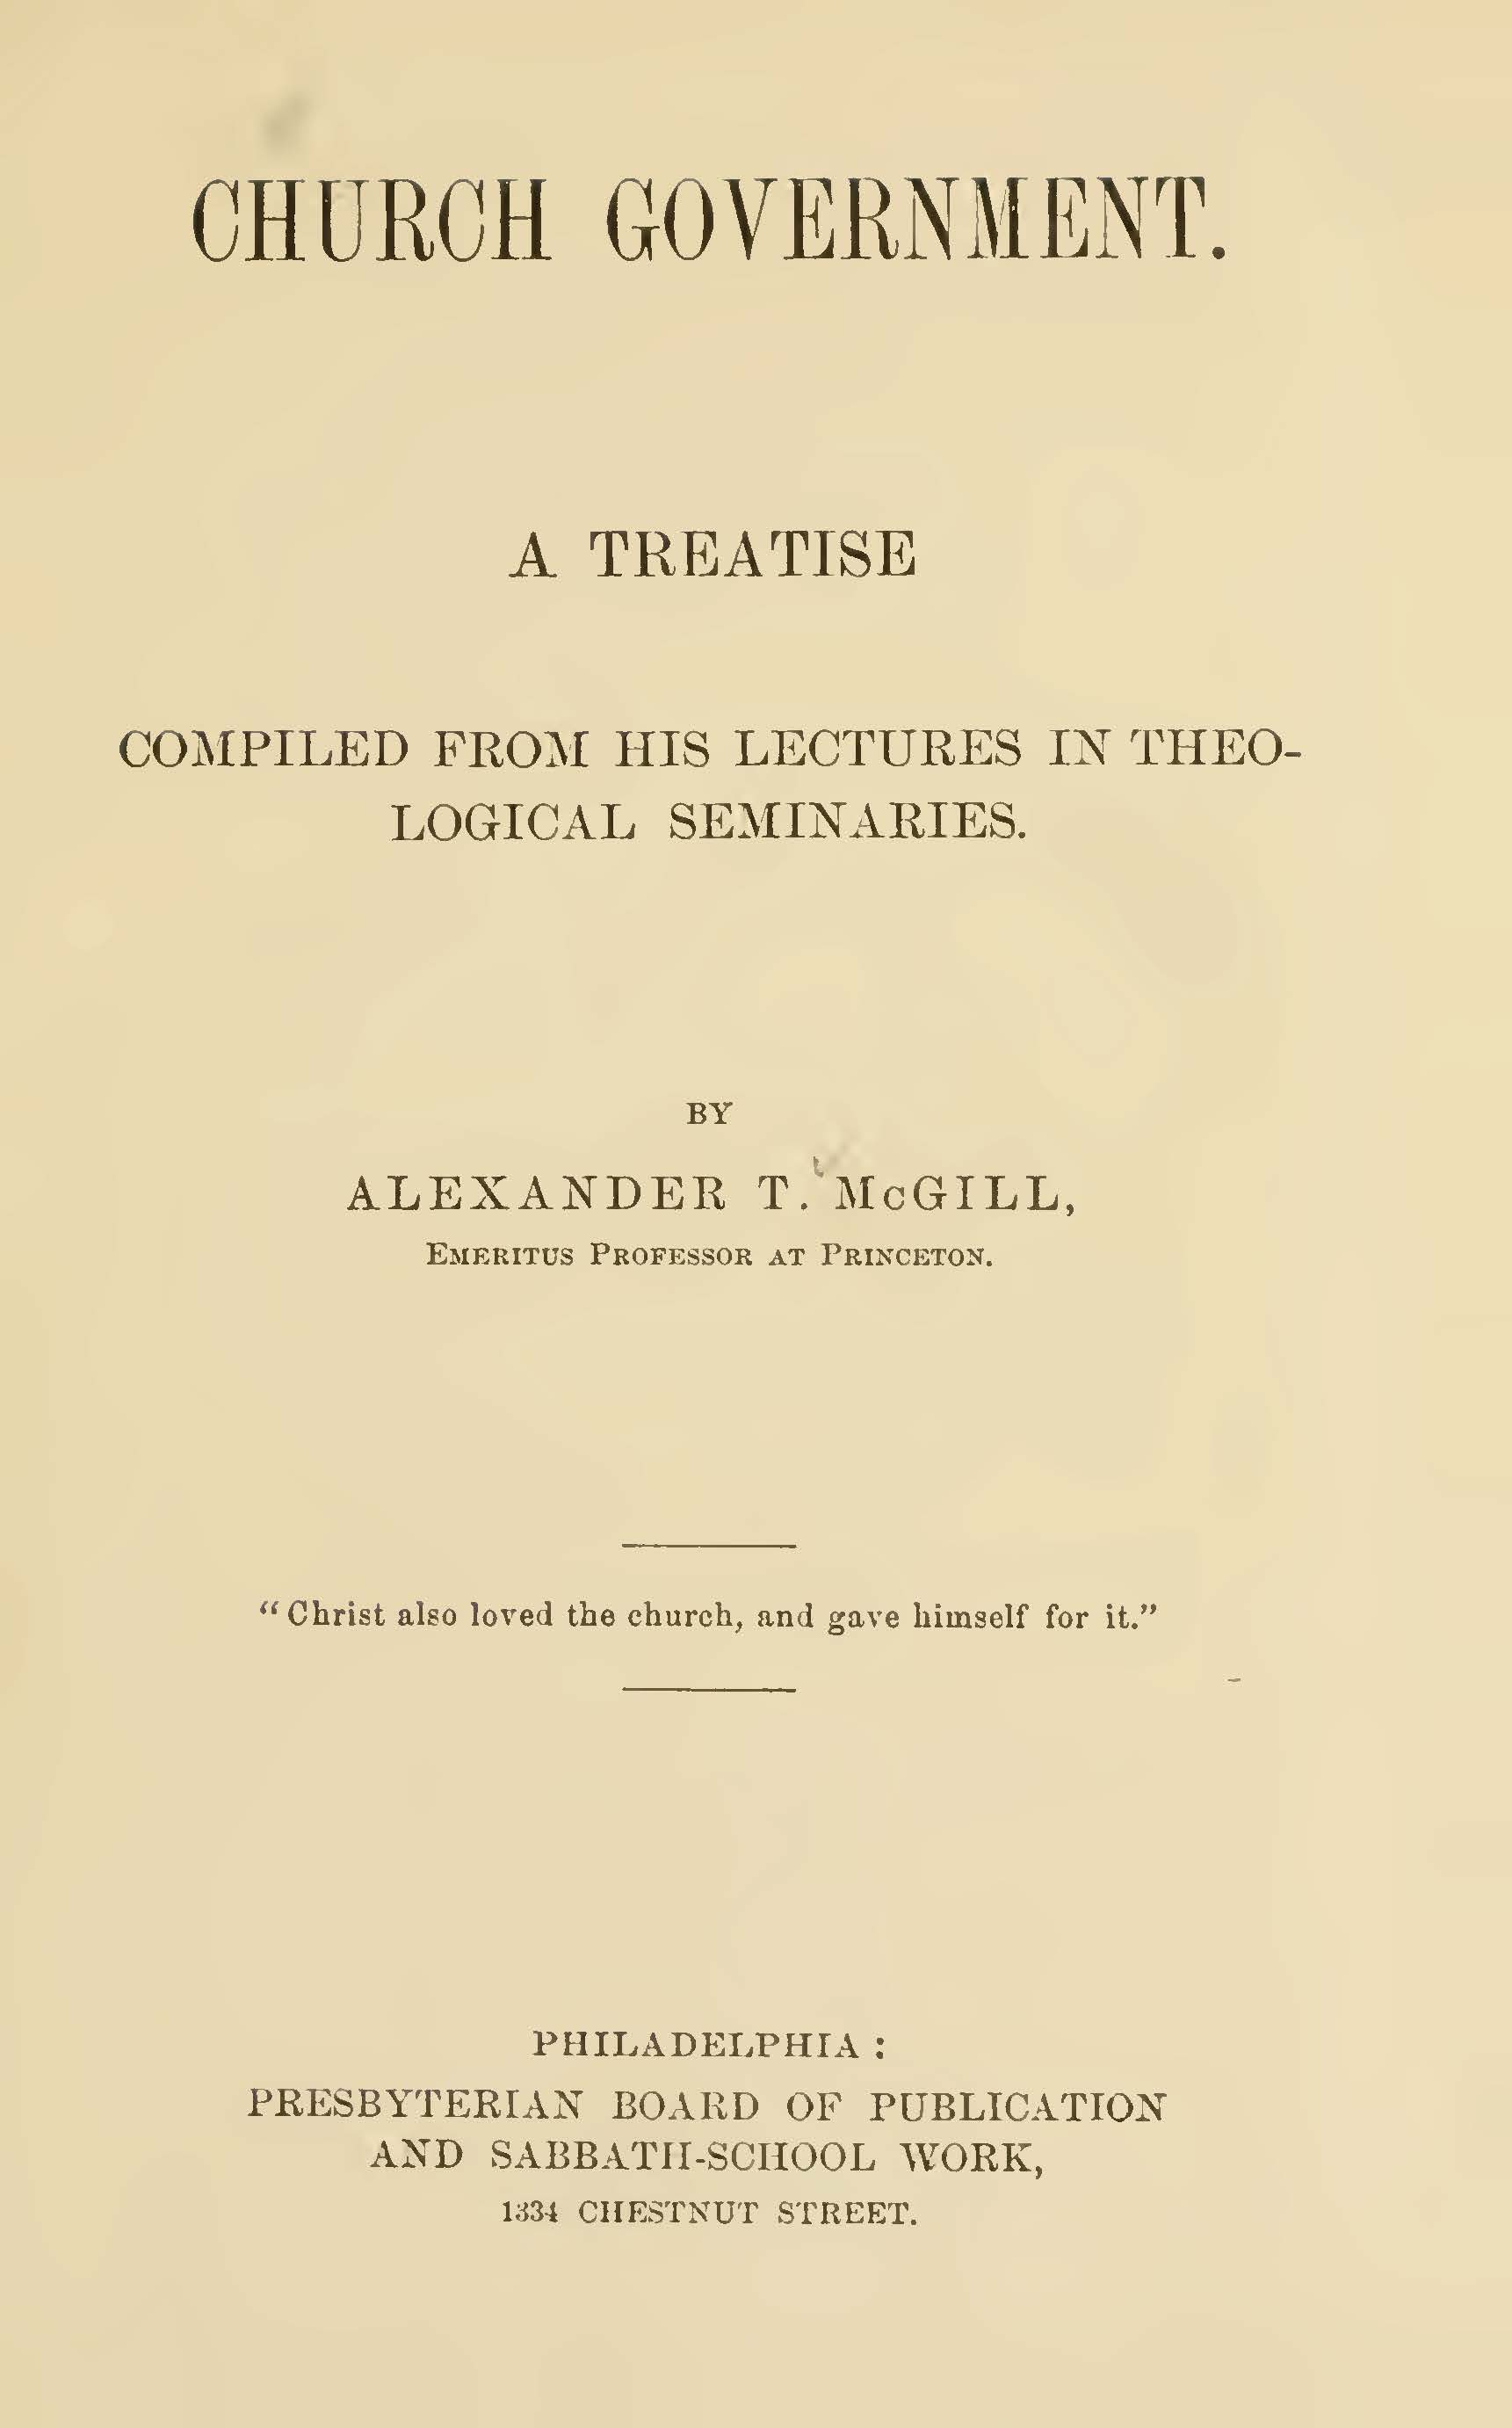 McGill, Alexander Taggart, Church Government A Treatise Title Page.jpg